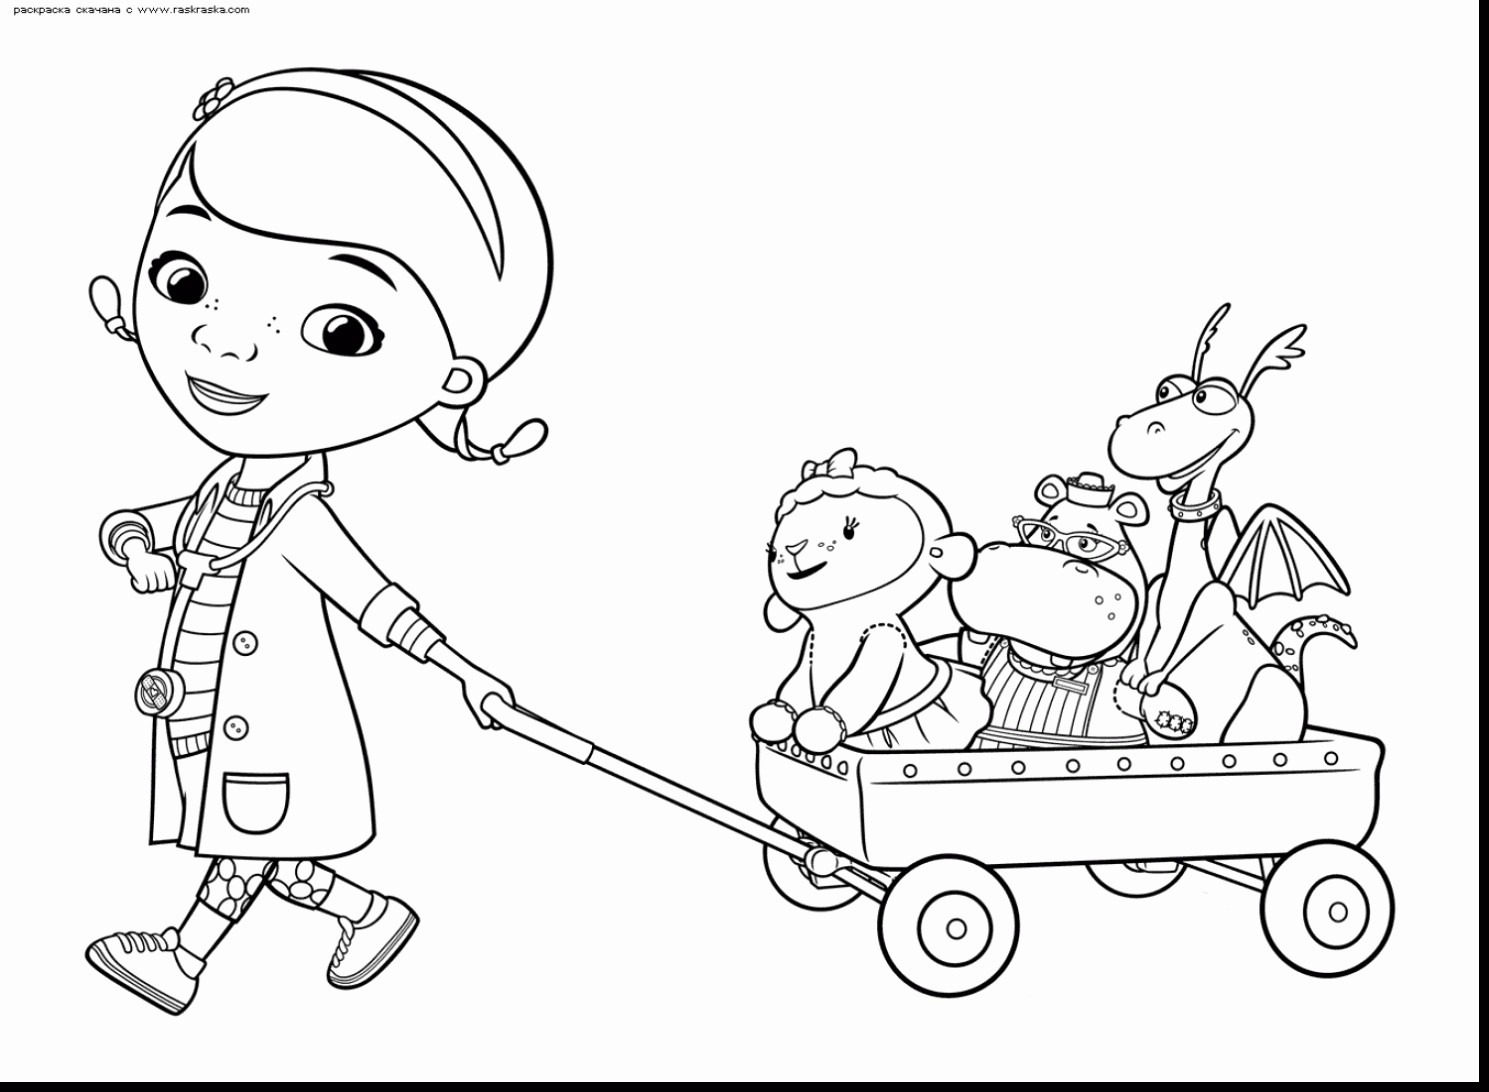 Jojo Siwa Coloring Pages Best Of Totoro Printable Coloring Pages